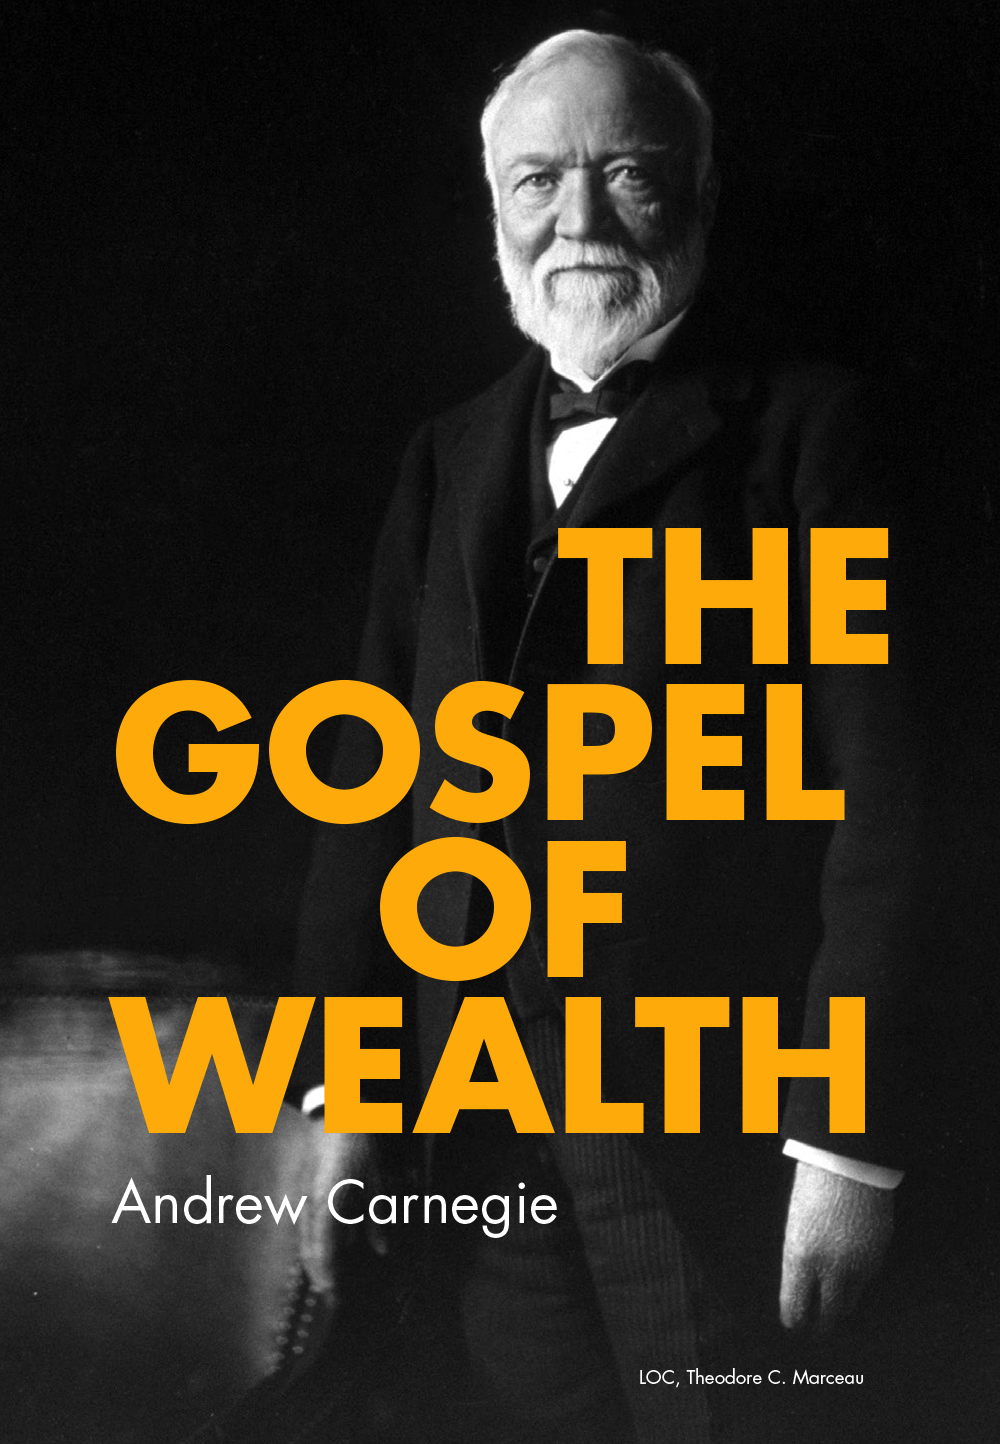 an overview of andrew carnegies preaches of the gospel of wealth Andrew carnegie and the gospel of wealth andrew carnegie had a different interpretation of how to deal with the just an overview archives may 2014 april.